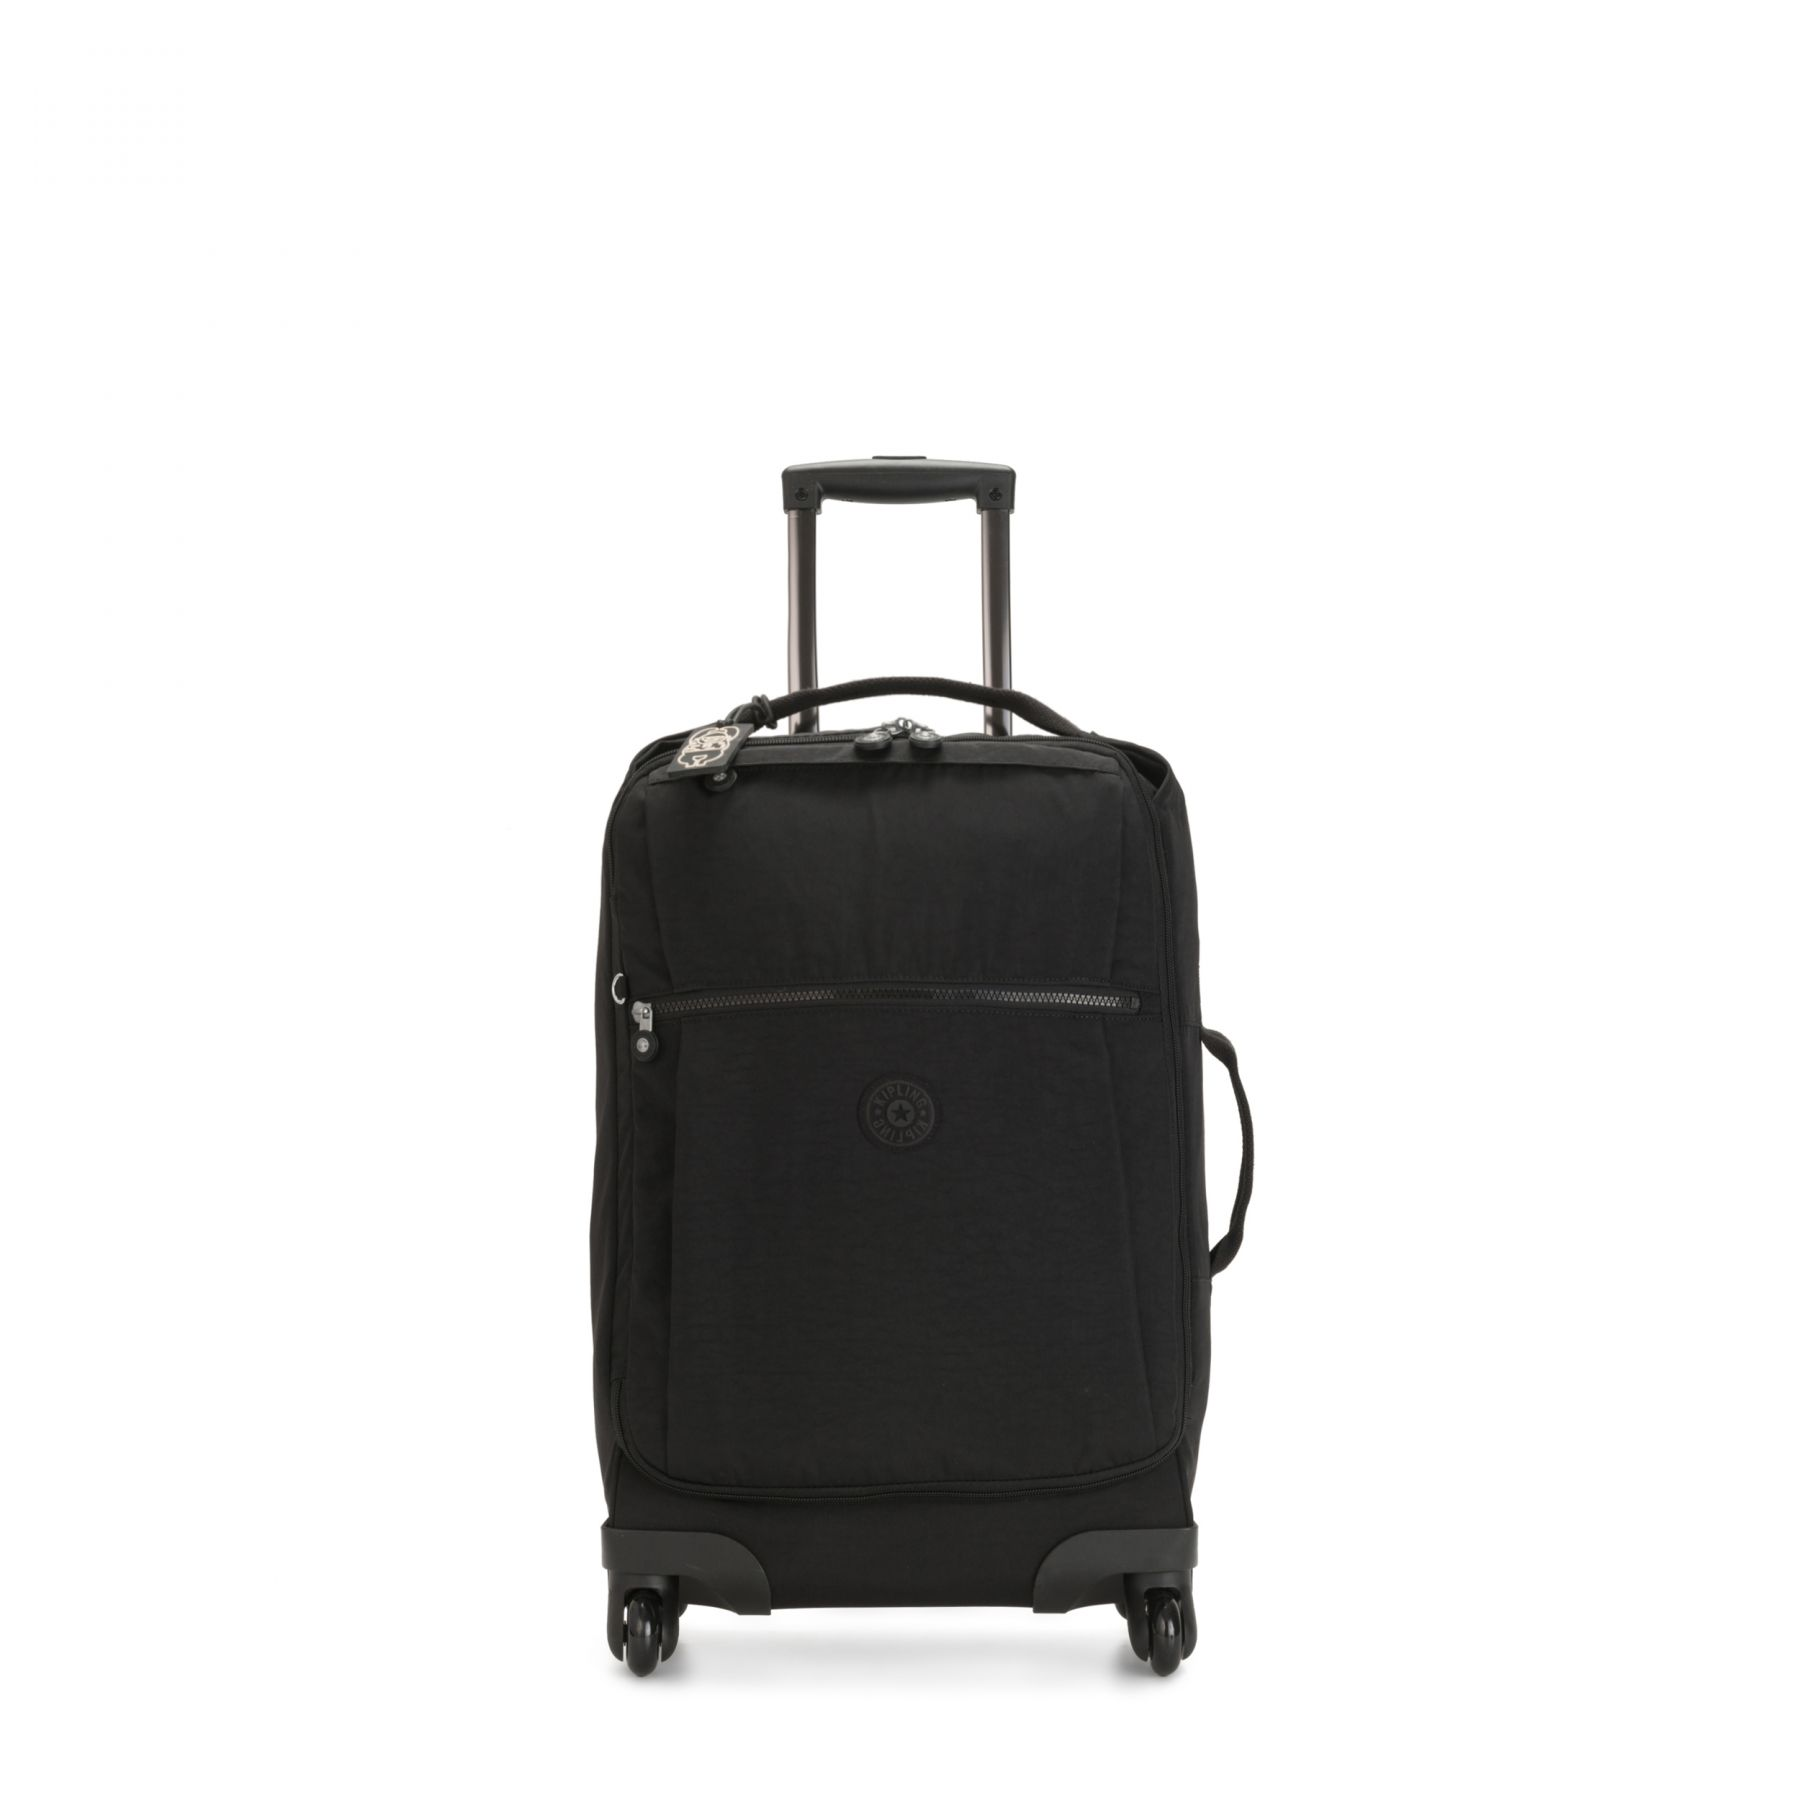 DARCEY Latest Luggage by Kipling - Front view